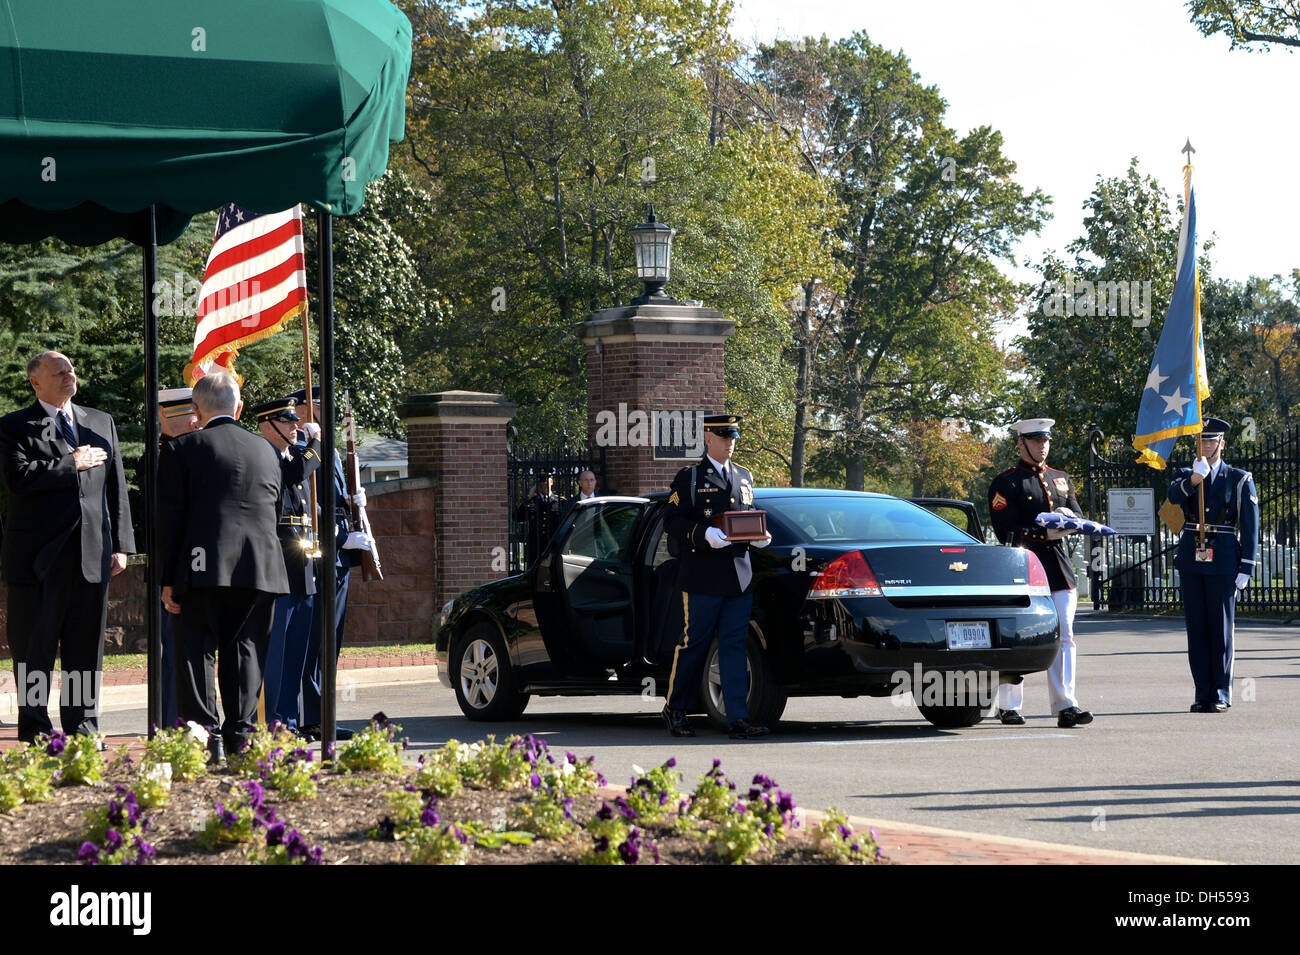 U.S. Service members of the Honor Guard remove the remains of Gen. David C. Jones, former Chairman of the Joint Chiefs of Staff, at the Old Chapel on Joint Base Myer Henderson-Hall, Arlington, Va., Oct. 25, 2013. - Stock Image